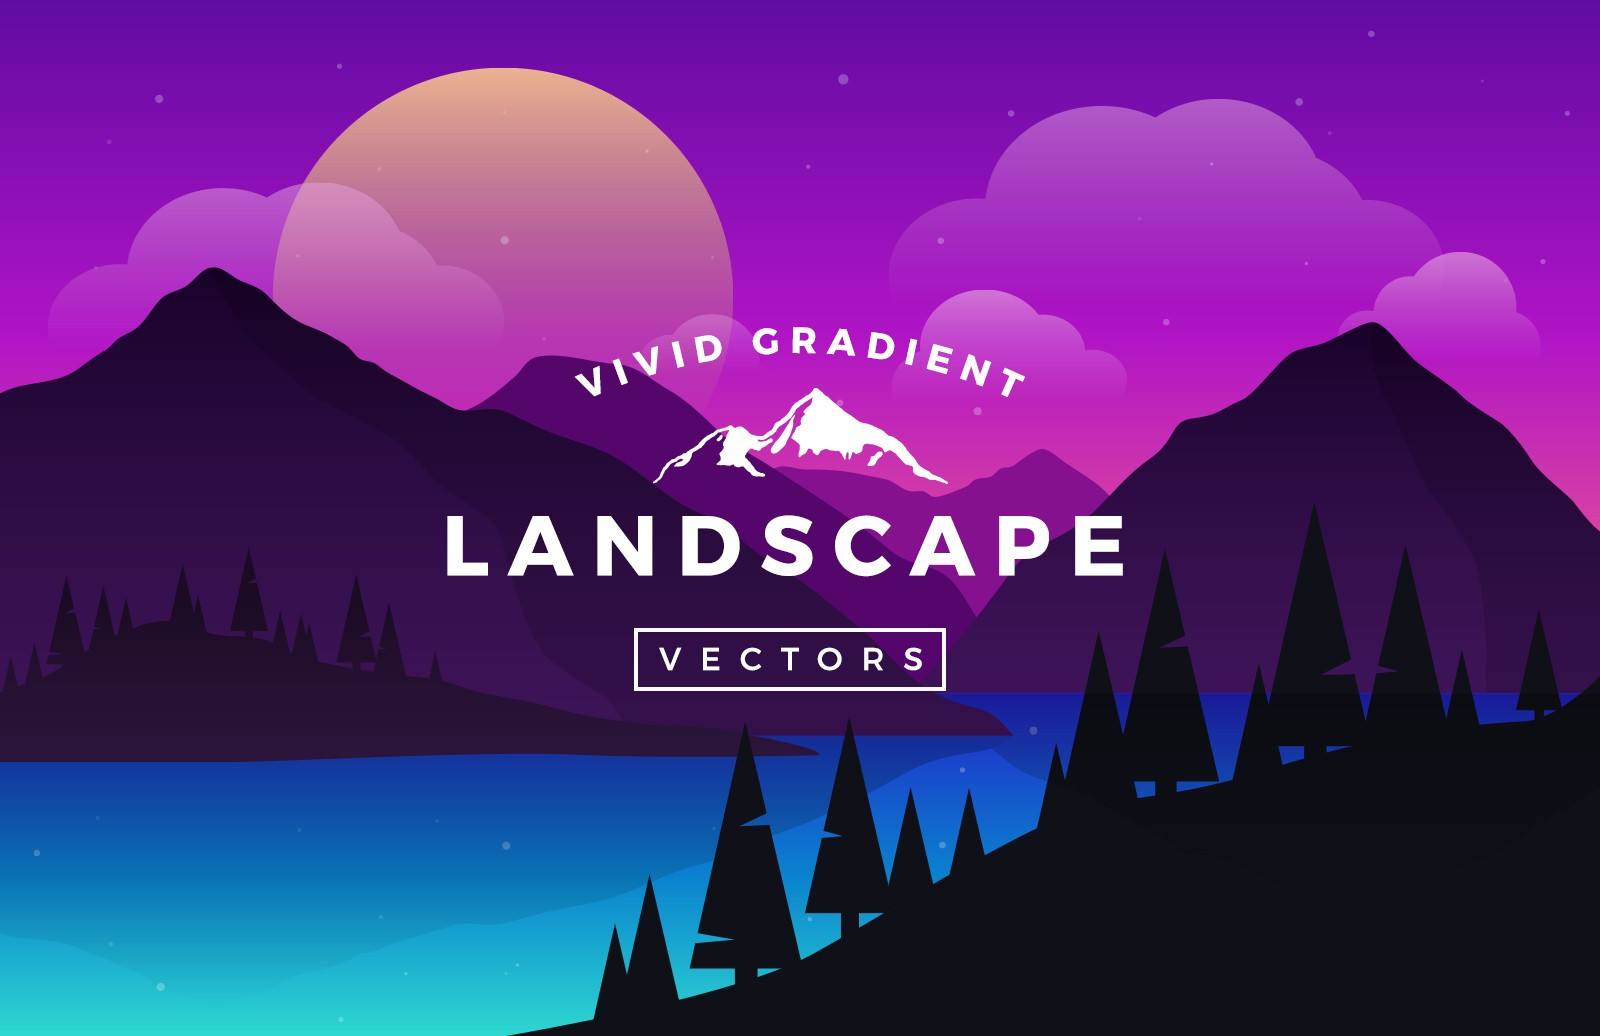 Vivid Gradient Vector Landscapes